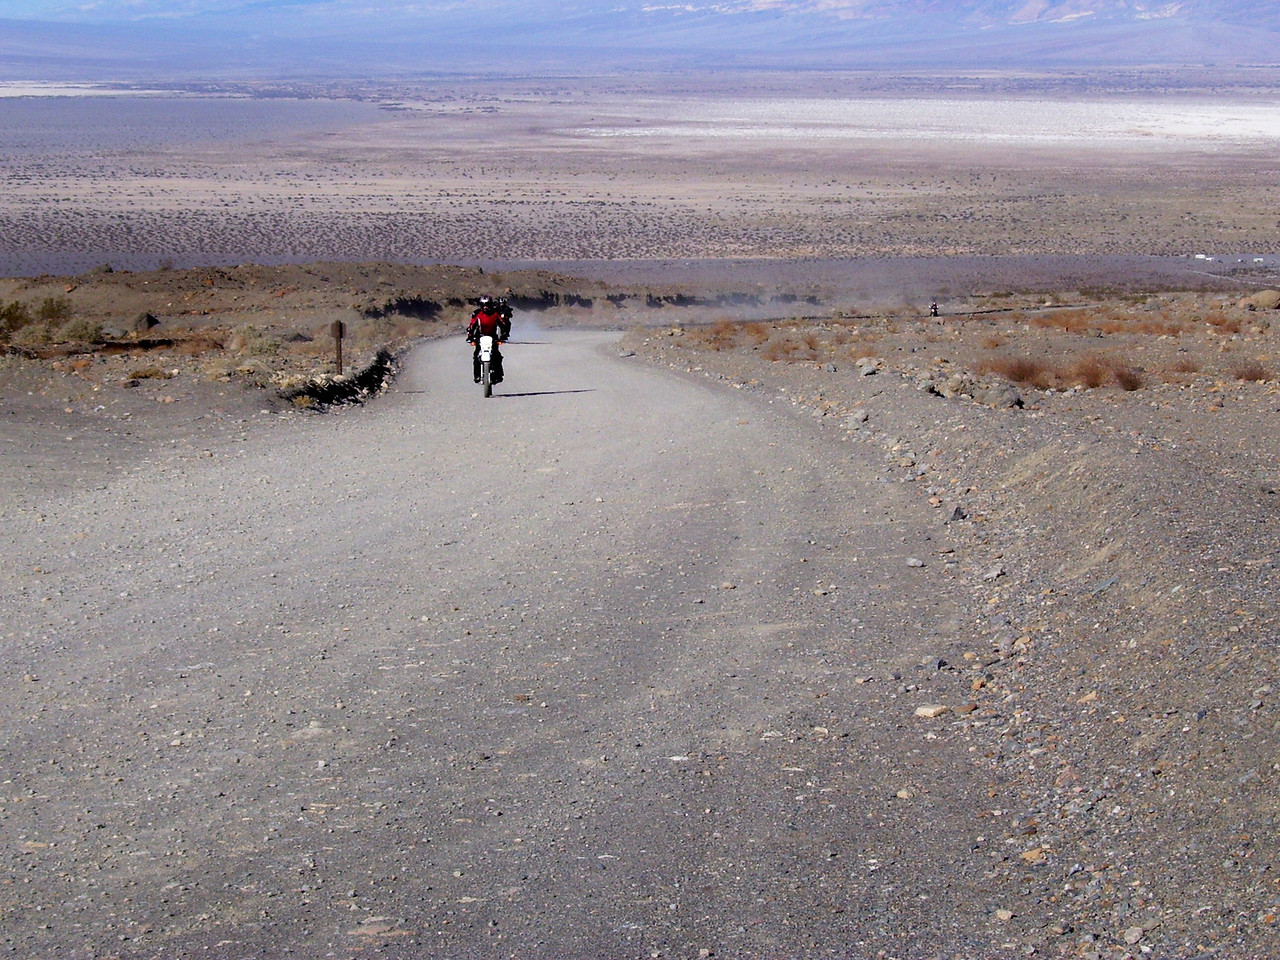 The road up to Mosaic Canyon.